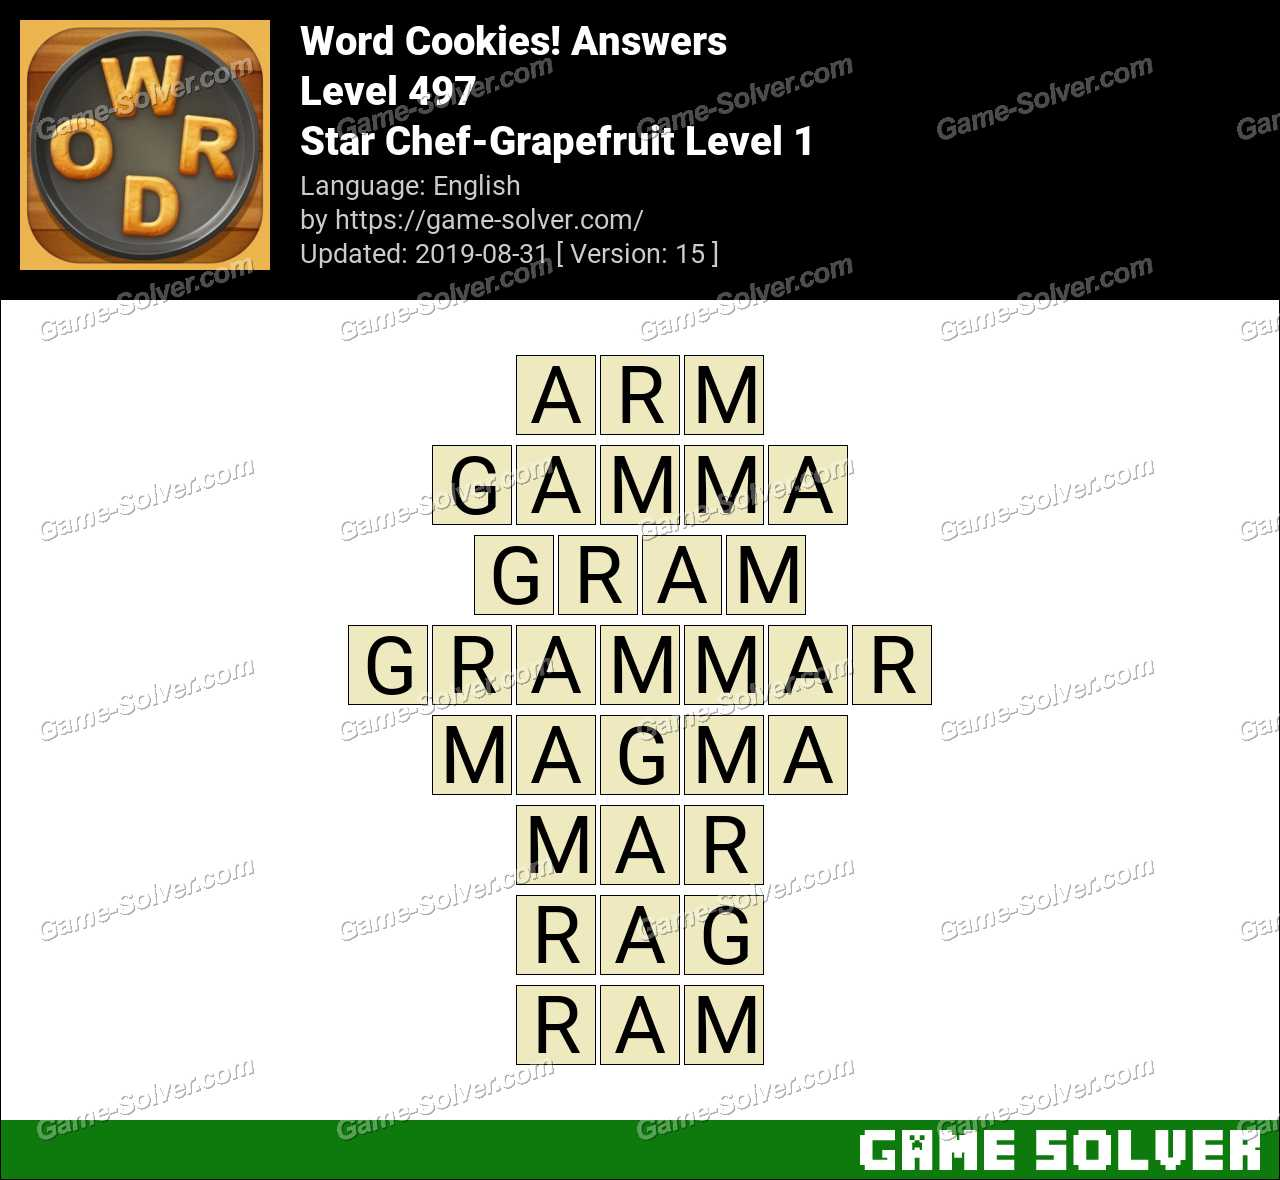 Word Cookies Star Chef-Grapefruit Level 1 Answers